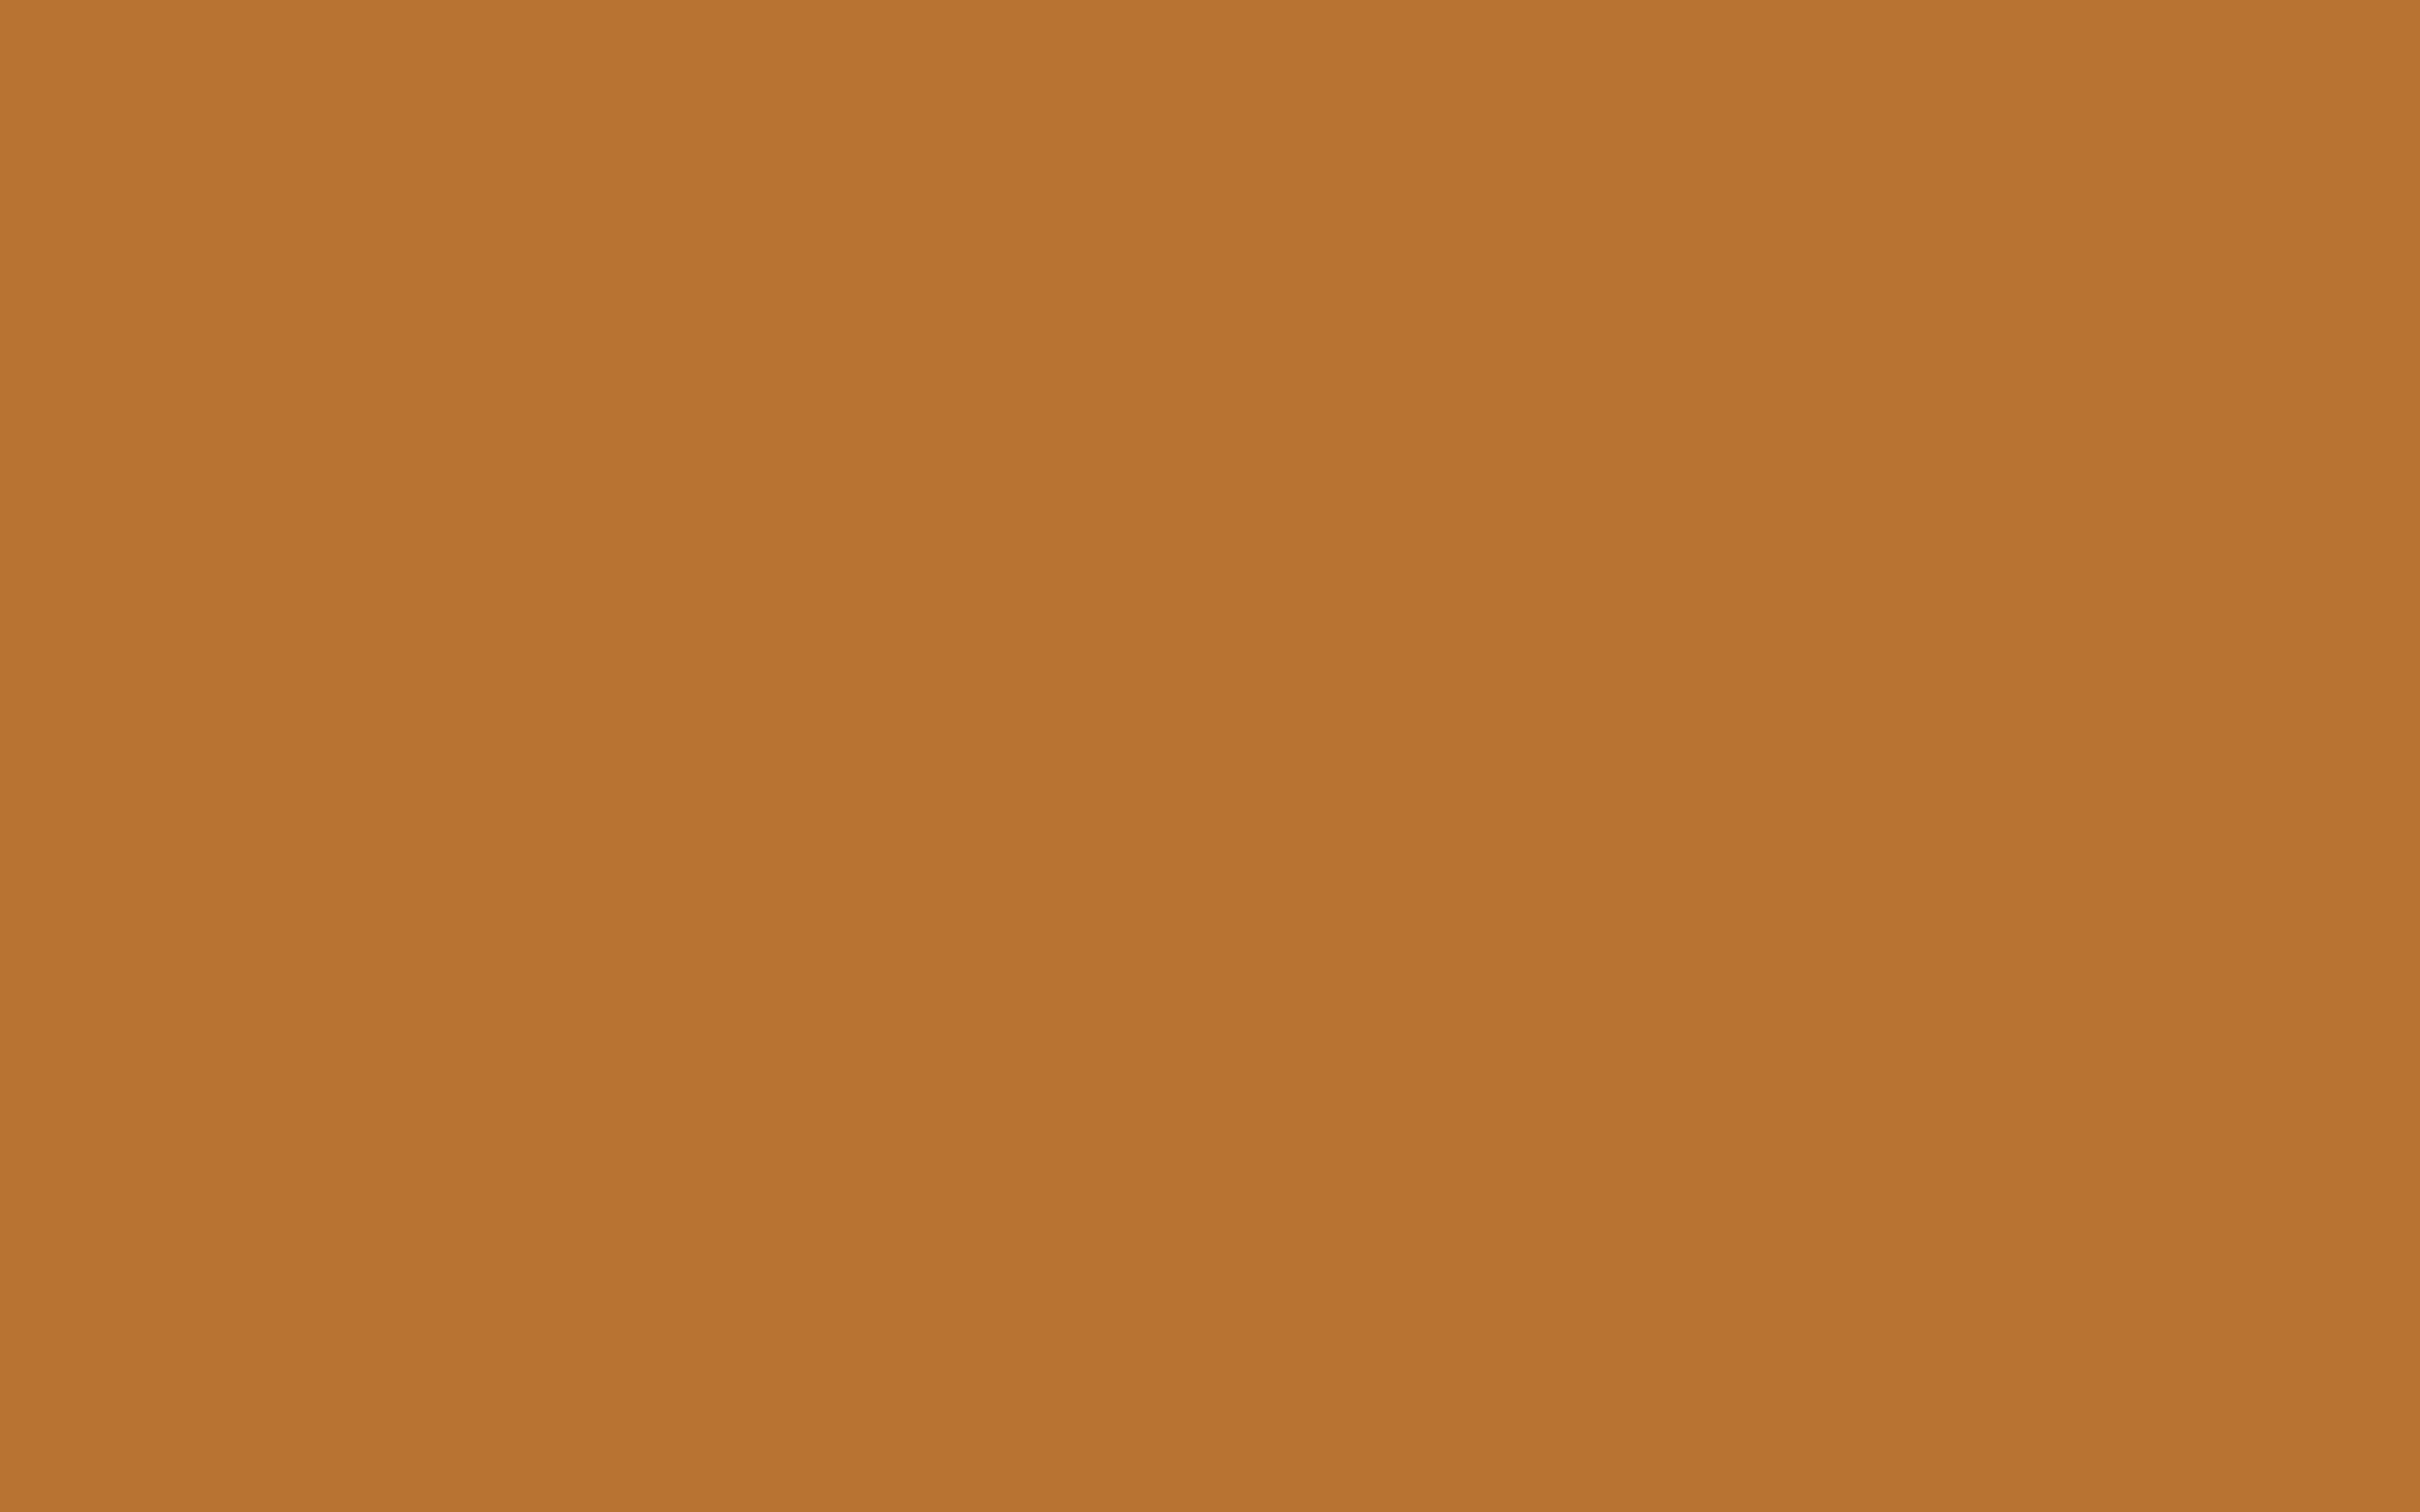 2560x1600 Copper Solid Color Background